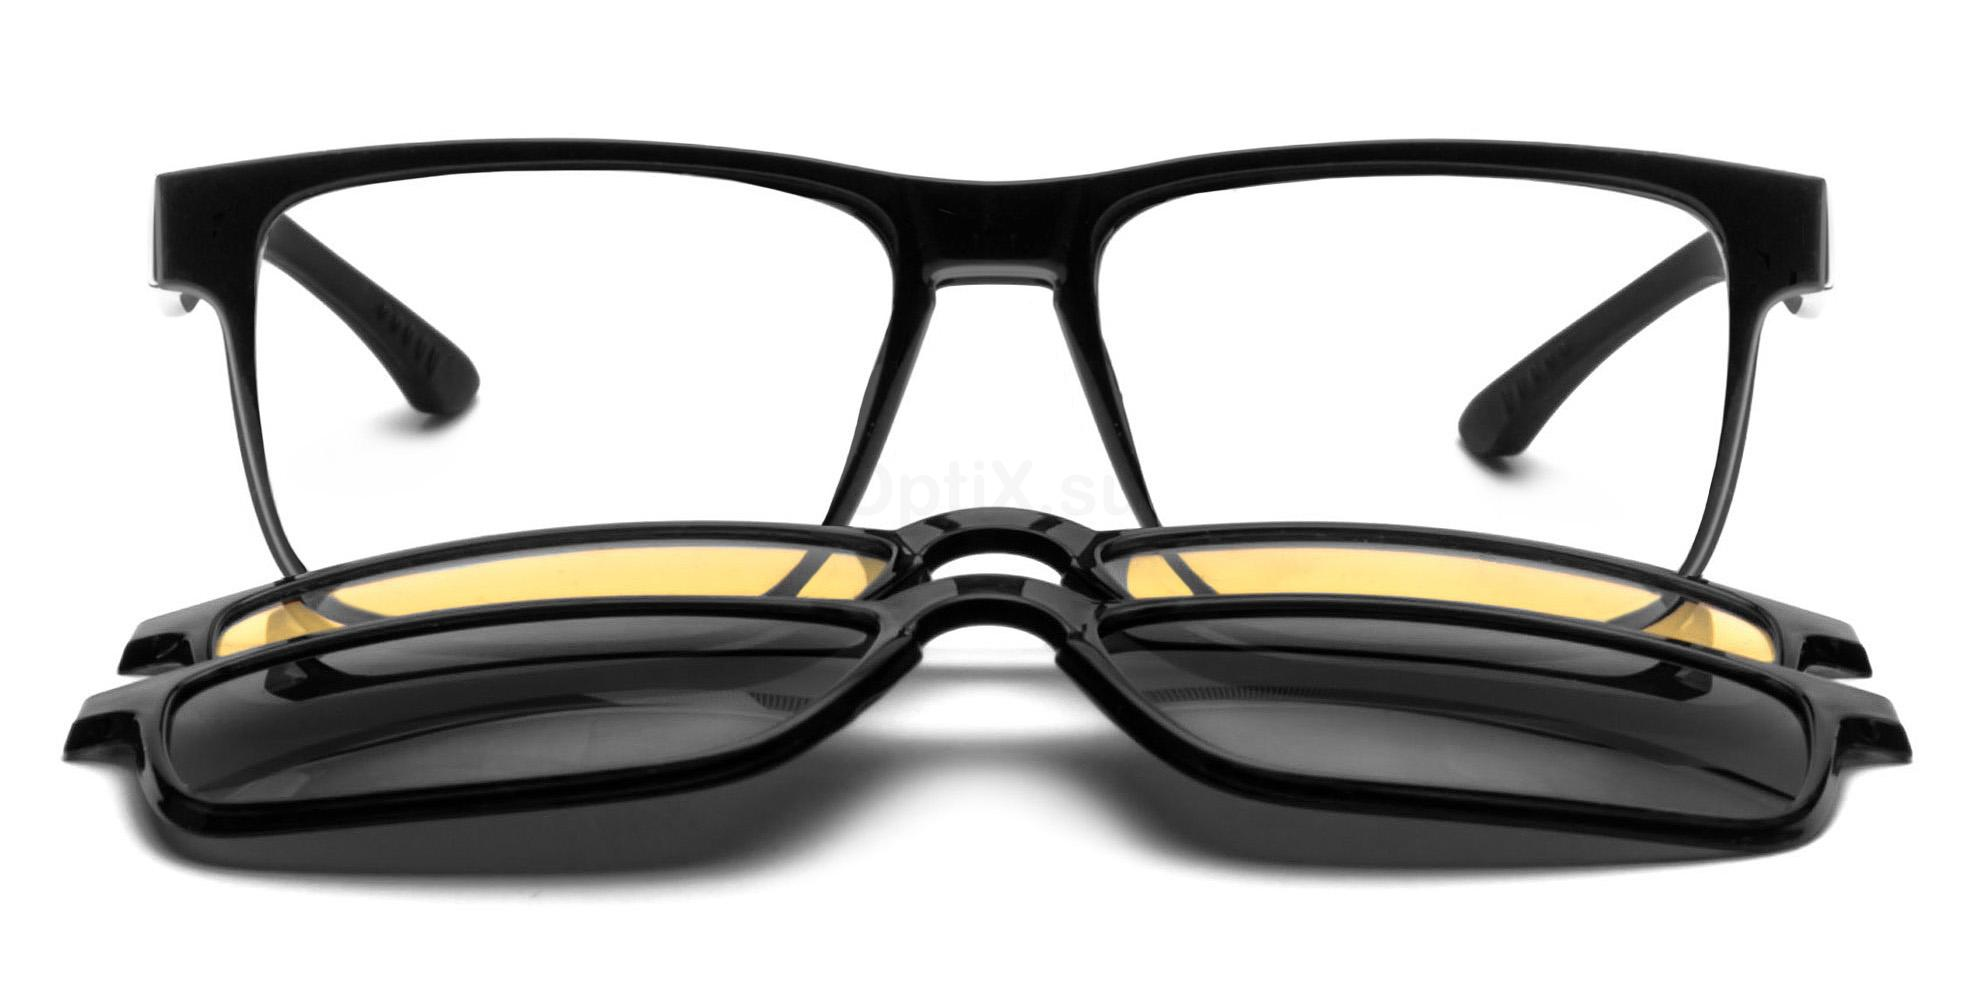 C1 5133 with 2X Magnetic, Polarised, Sunglasses Clip-on's Glasses, Infinity